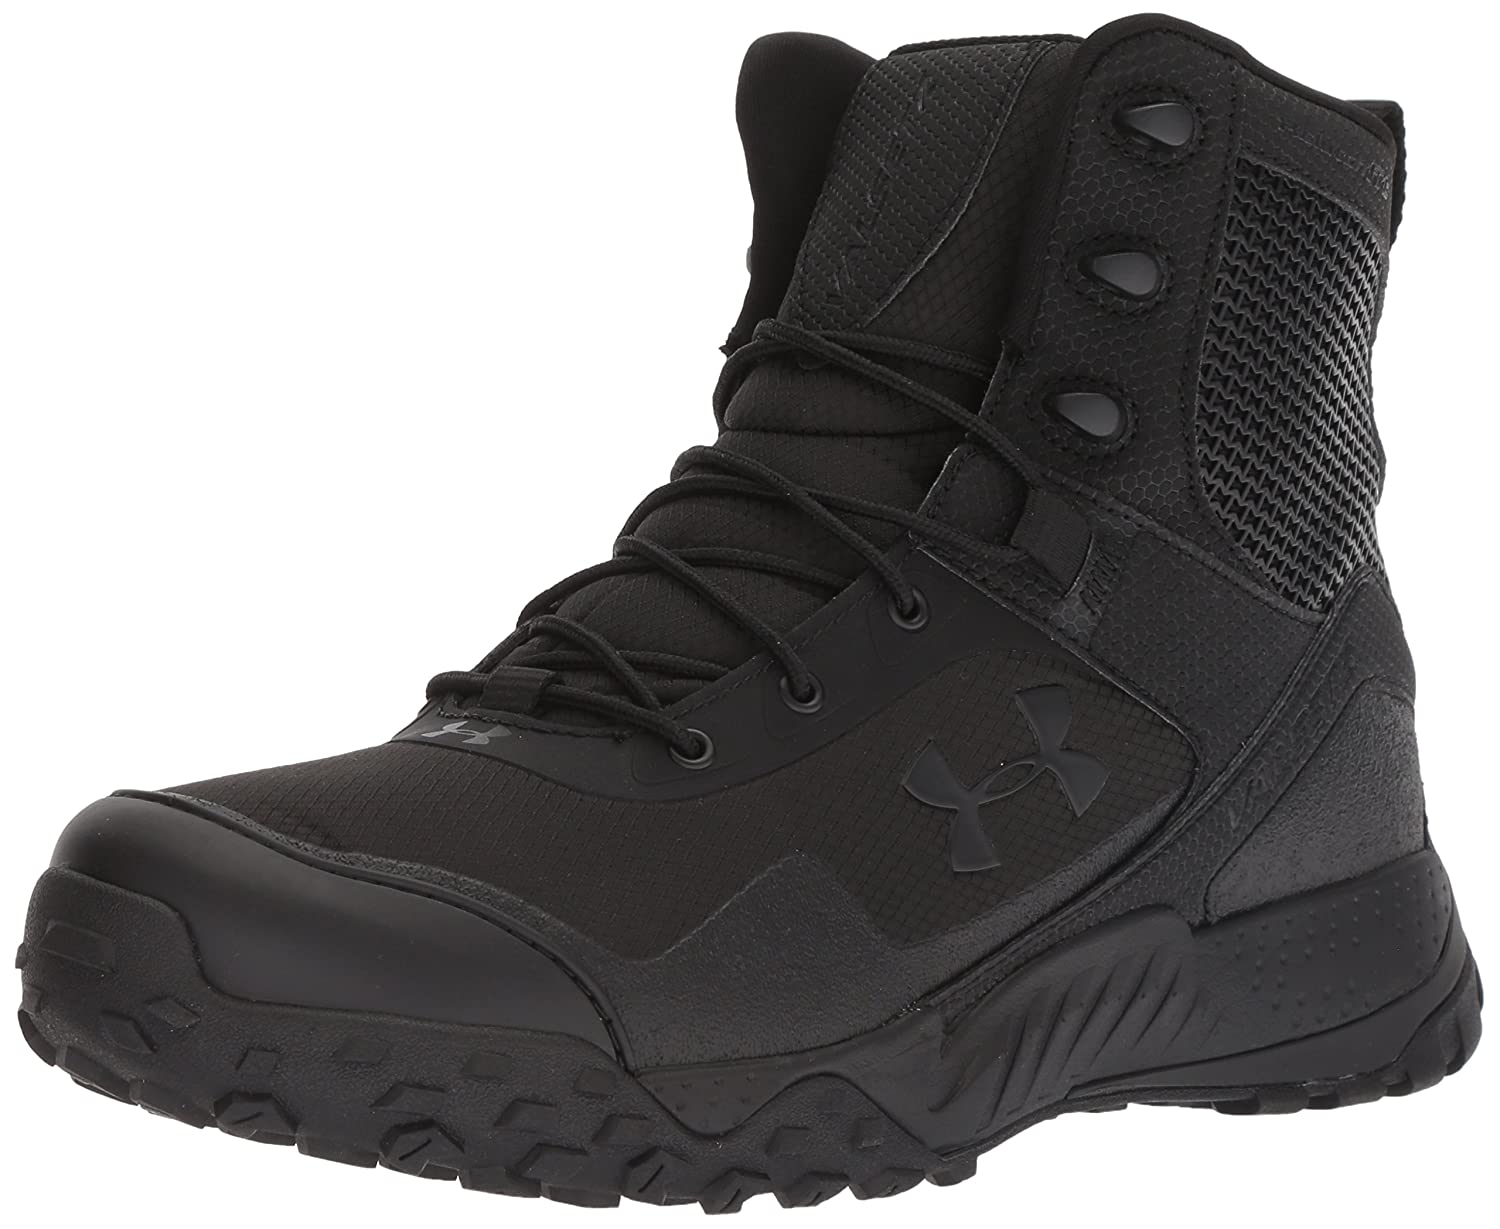 Men's RTS 1.5 Zip Military/Tactical Boot